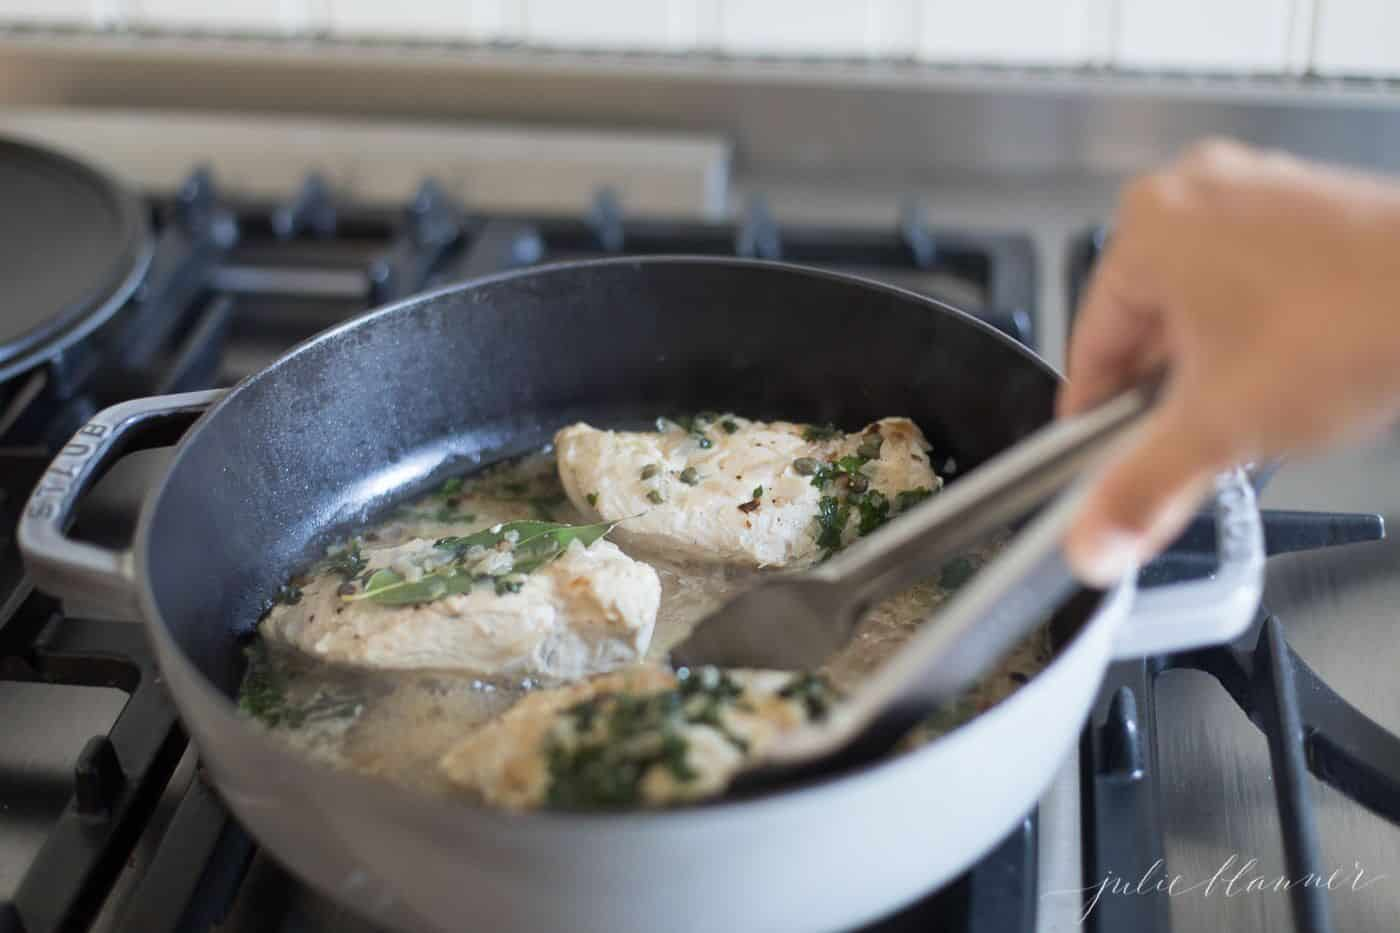 Chicken in white wine sauce in a gray saute pan, hand reaching in with tongs.